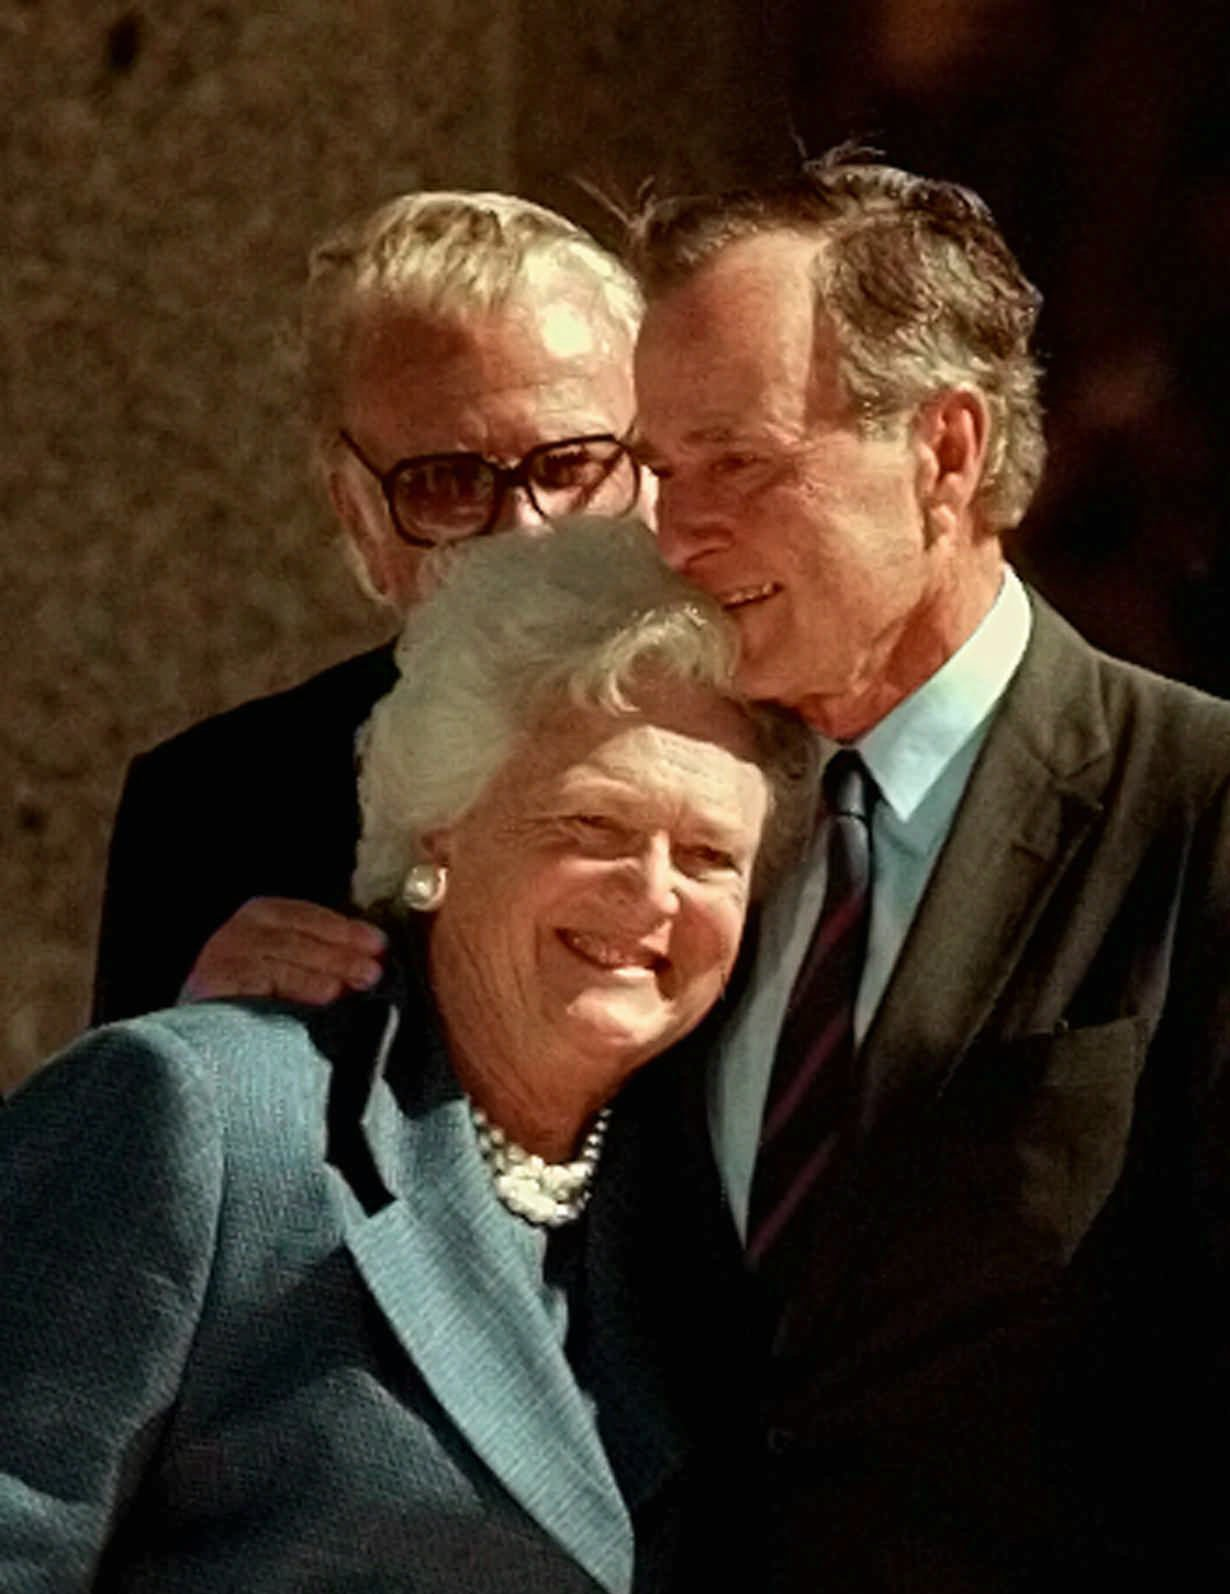 Former President George H.W. Bush hugs his wife, Barbara, after speaking at the dedication of the George Bush Presidential Library in College Station, TX., on Nov. 6, 1997. (AP Photo/Pat Sullivan)